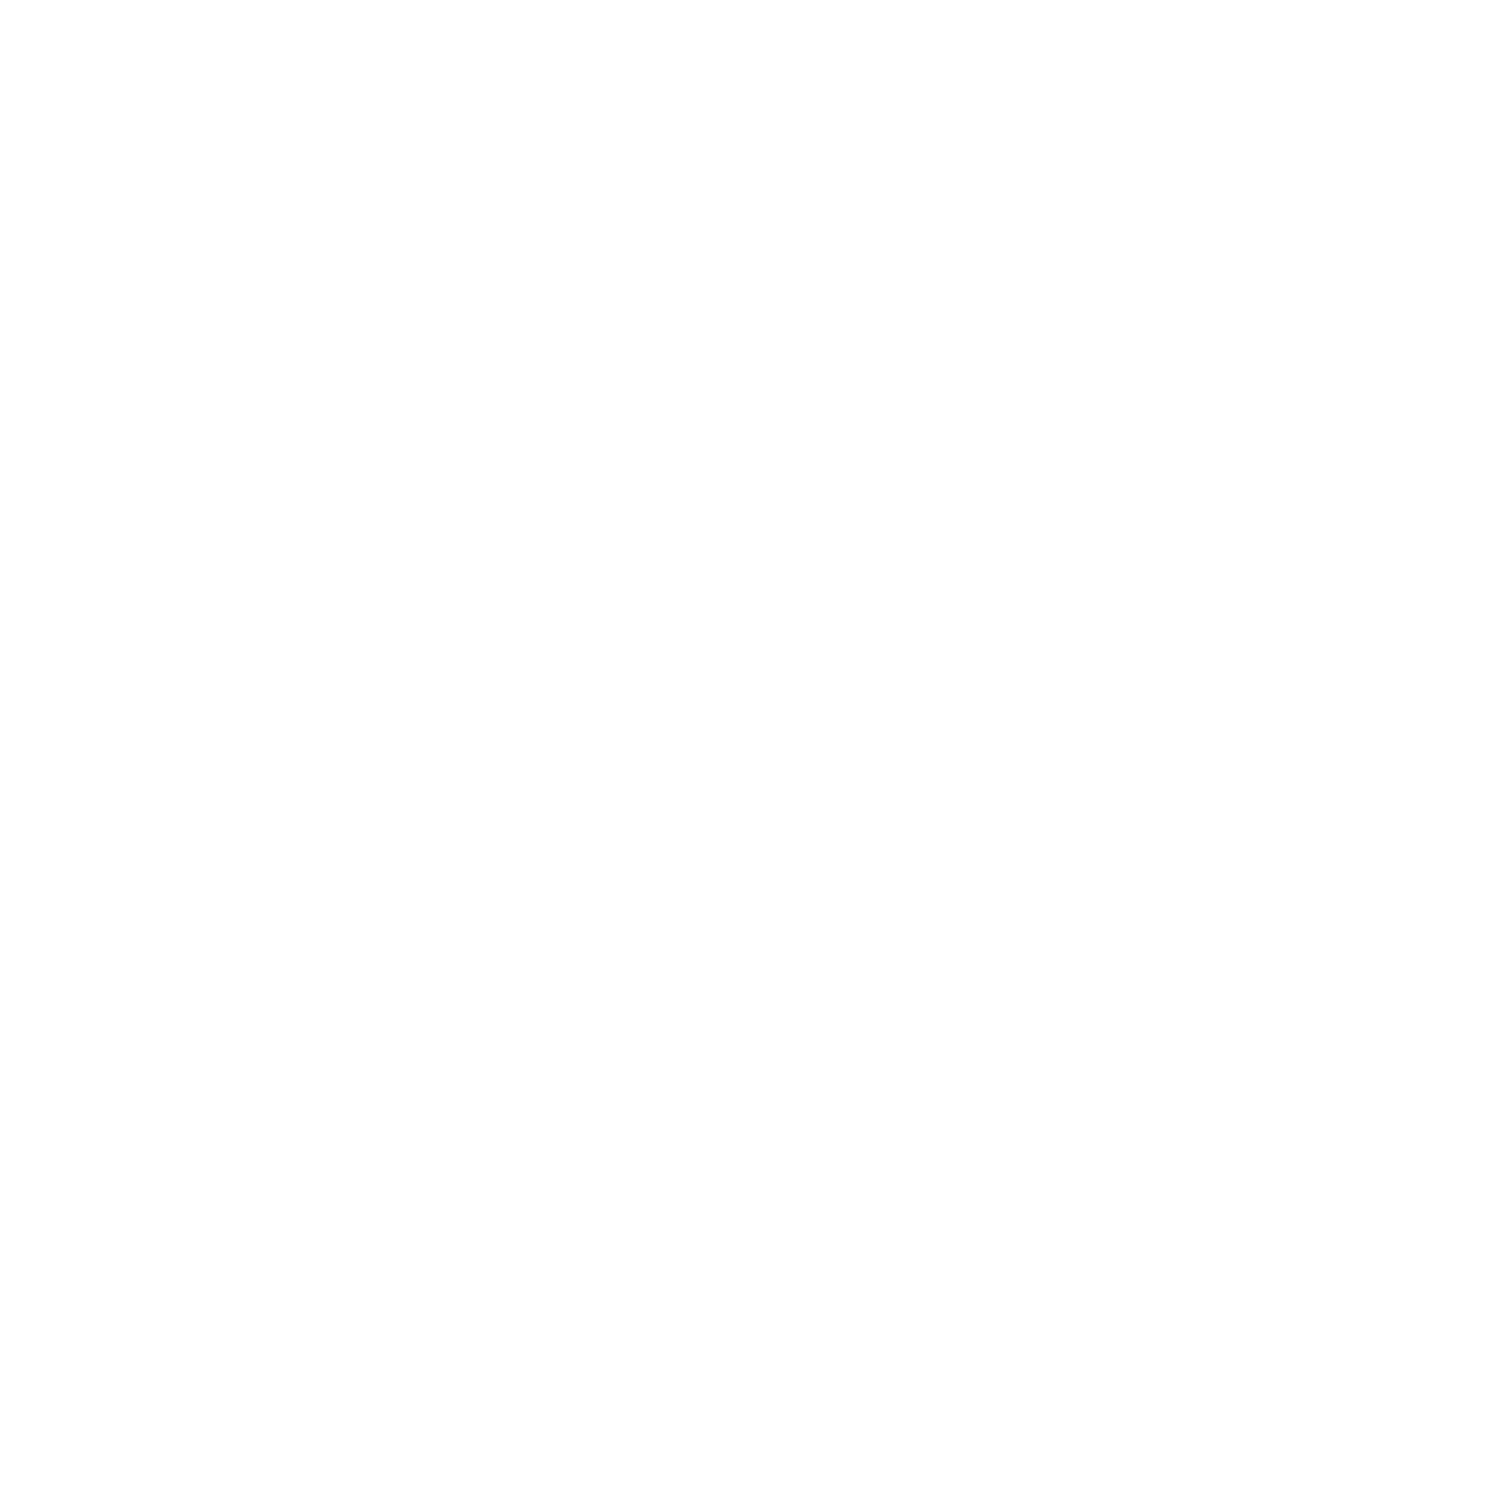 dark haven studio:  home of 10th planet abq